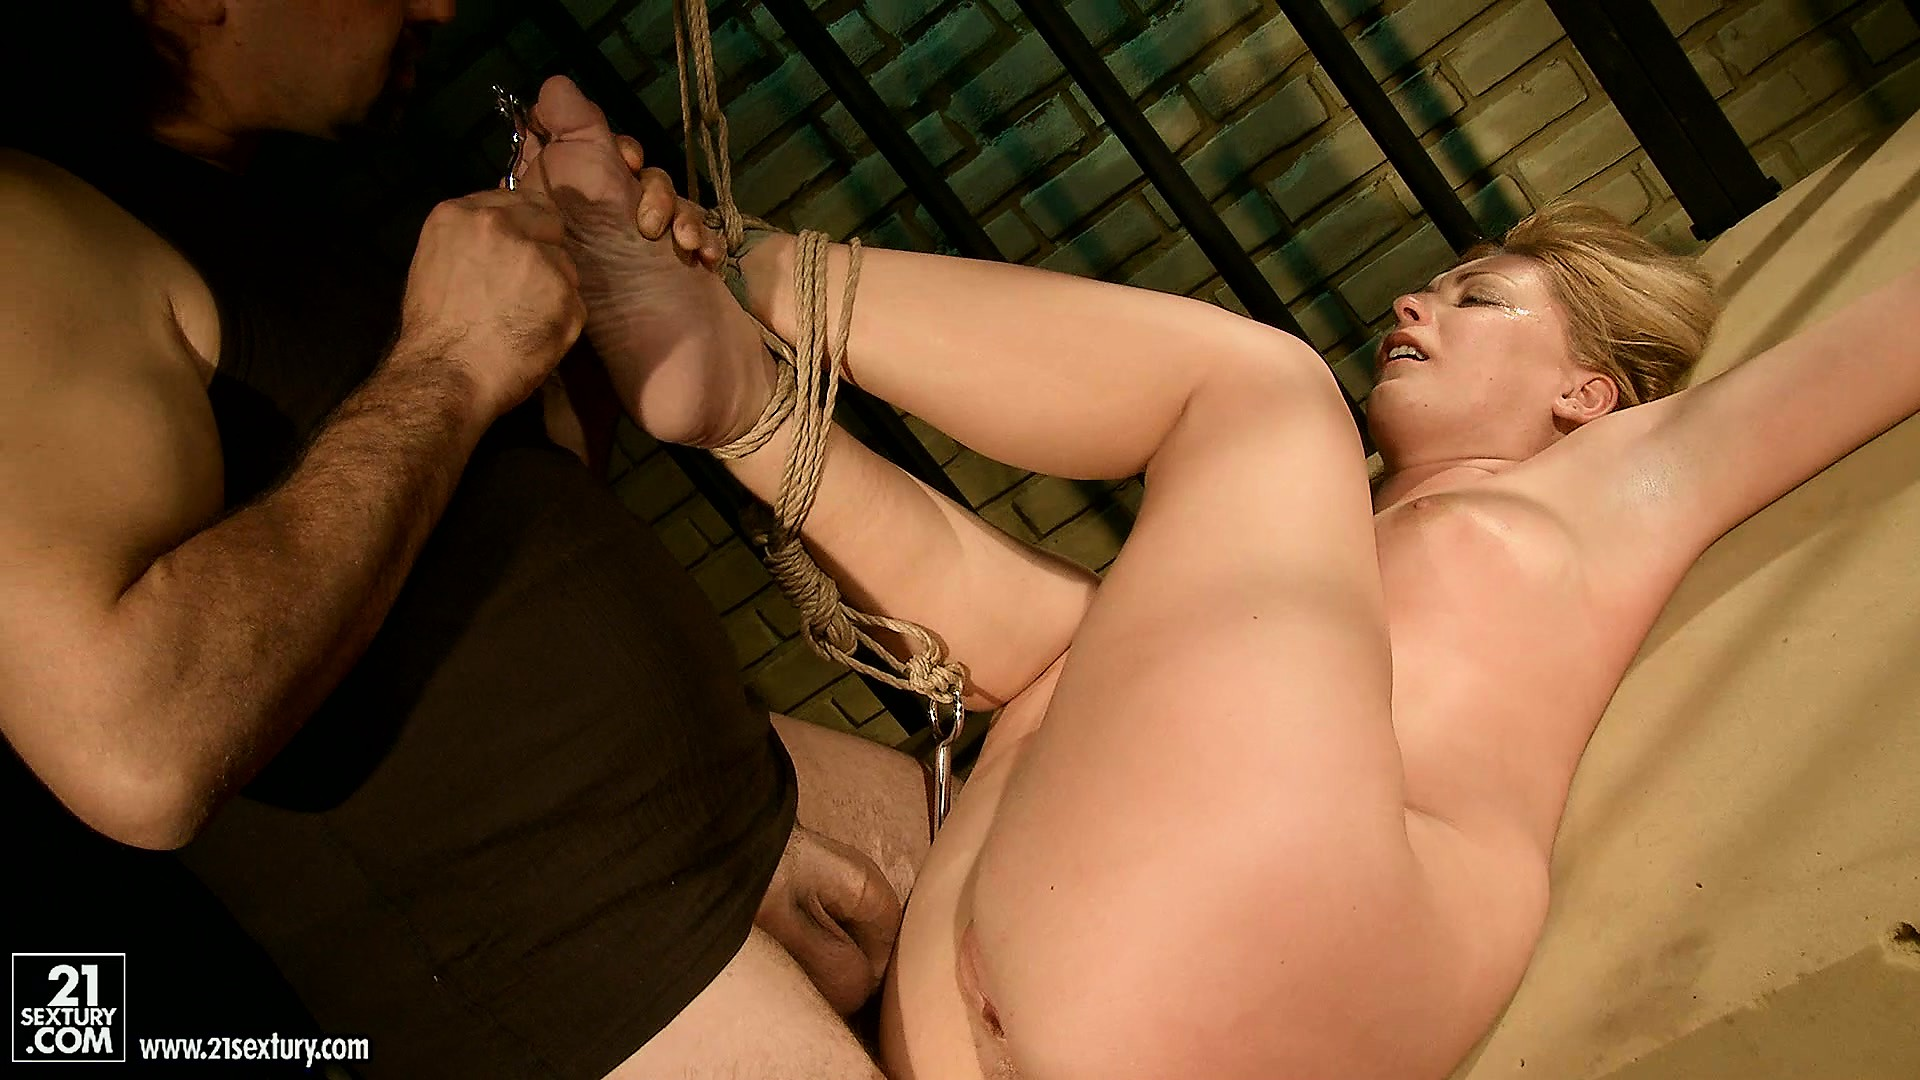 Porn Tube of She's Up Against The Bars And Then Put On The Floor For Some More Torture